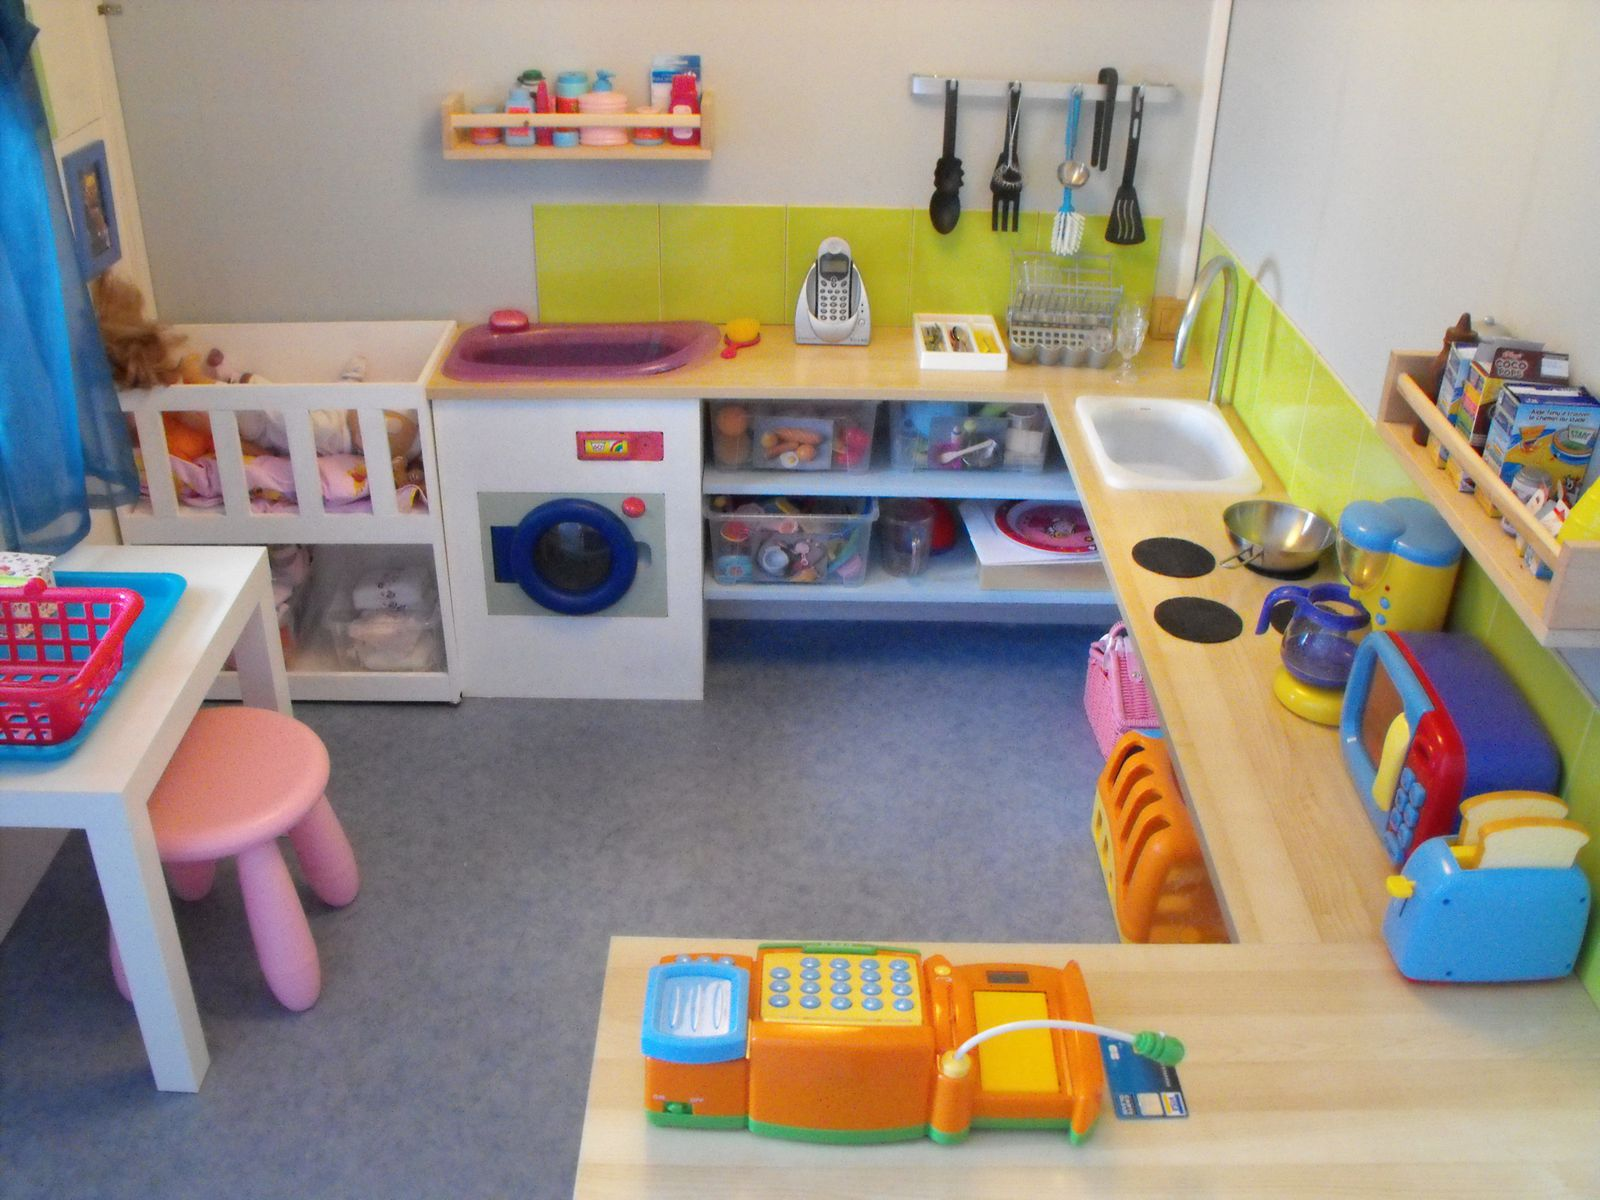 Amenagements divers montessori chez moi - Amenagement coin cuisine ...